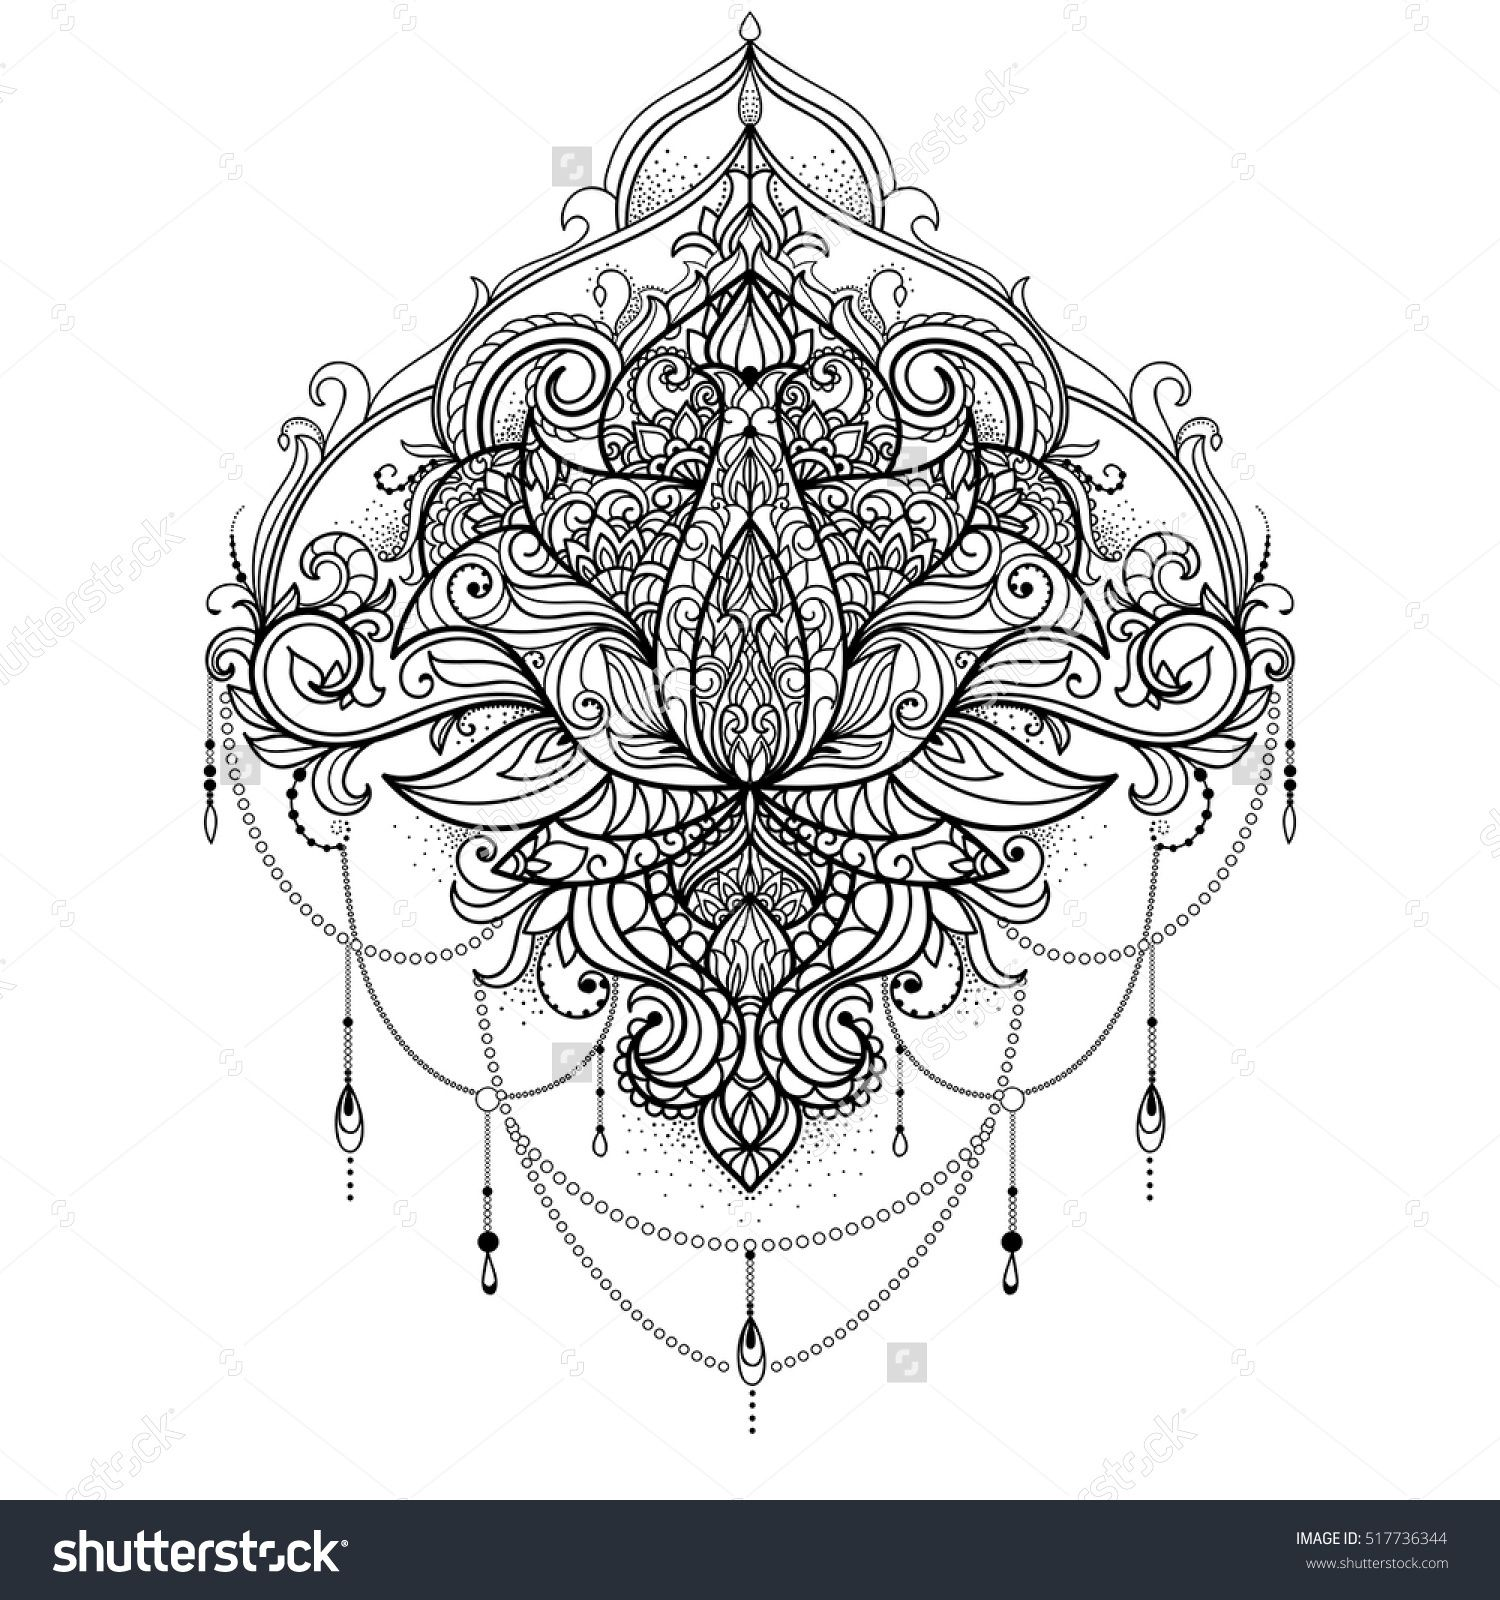 Hand Drawn Ornamental Lotus Flower For Adult Coloring Book Tattoo